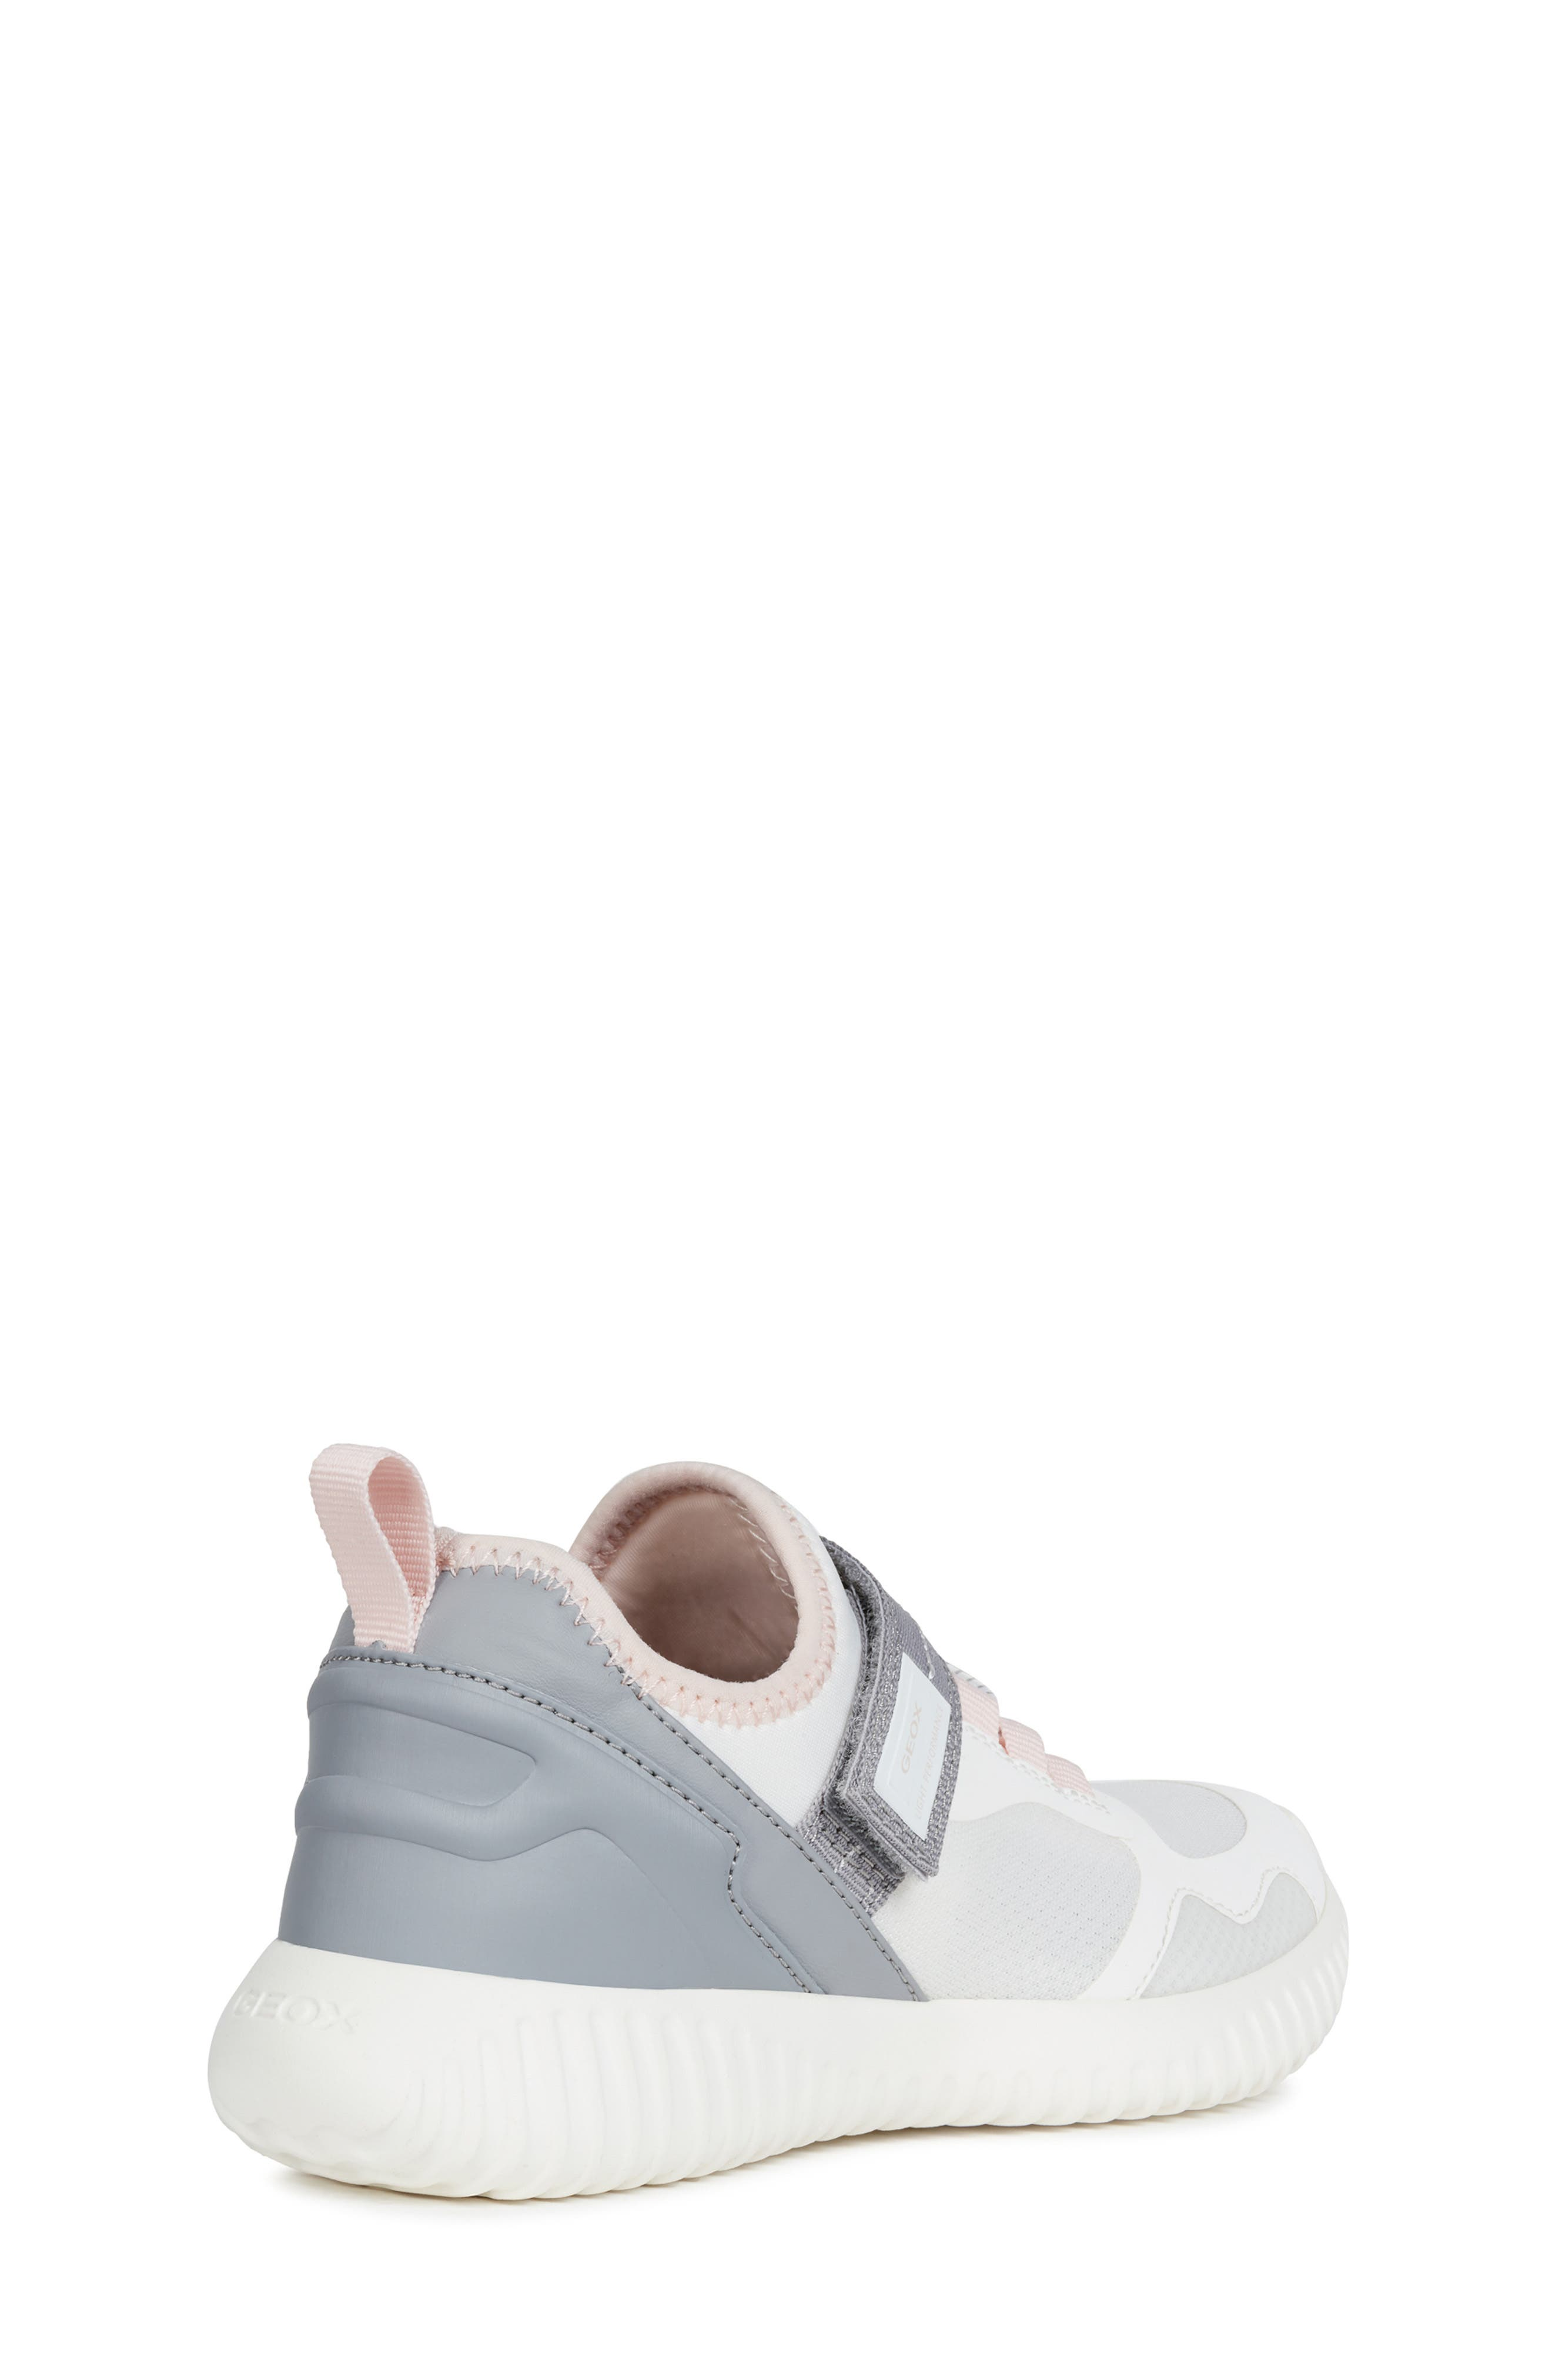 Waviness Sneaker,                             Alternate thumbnail 7, color,                             WHITE/ GREY